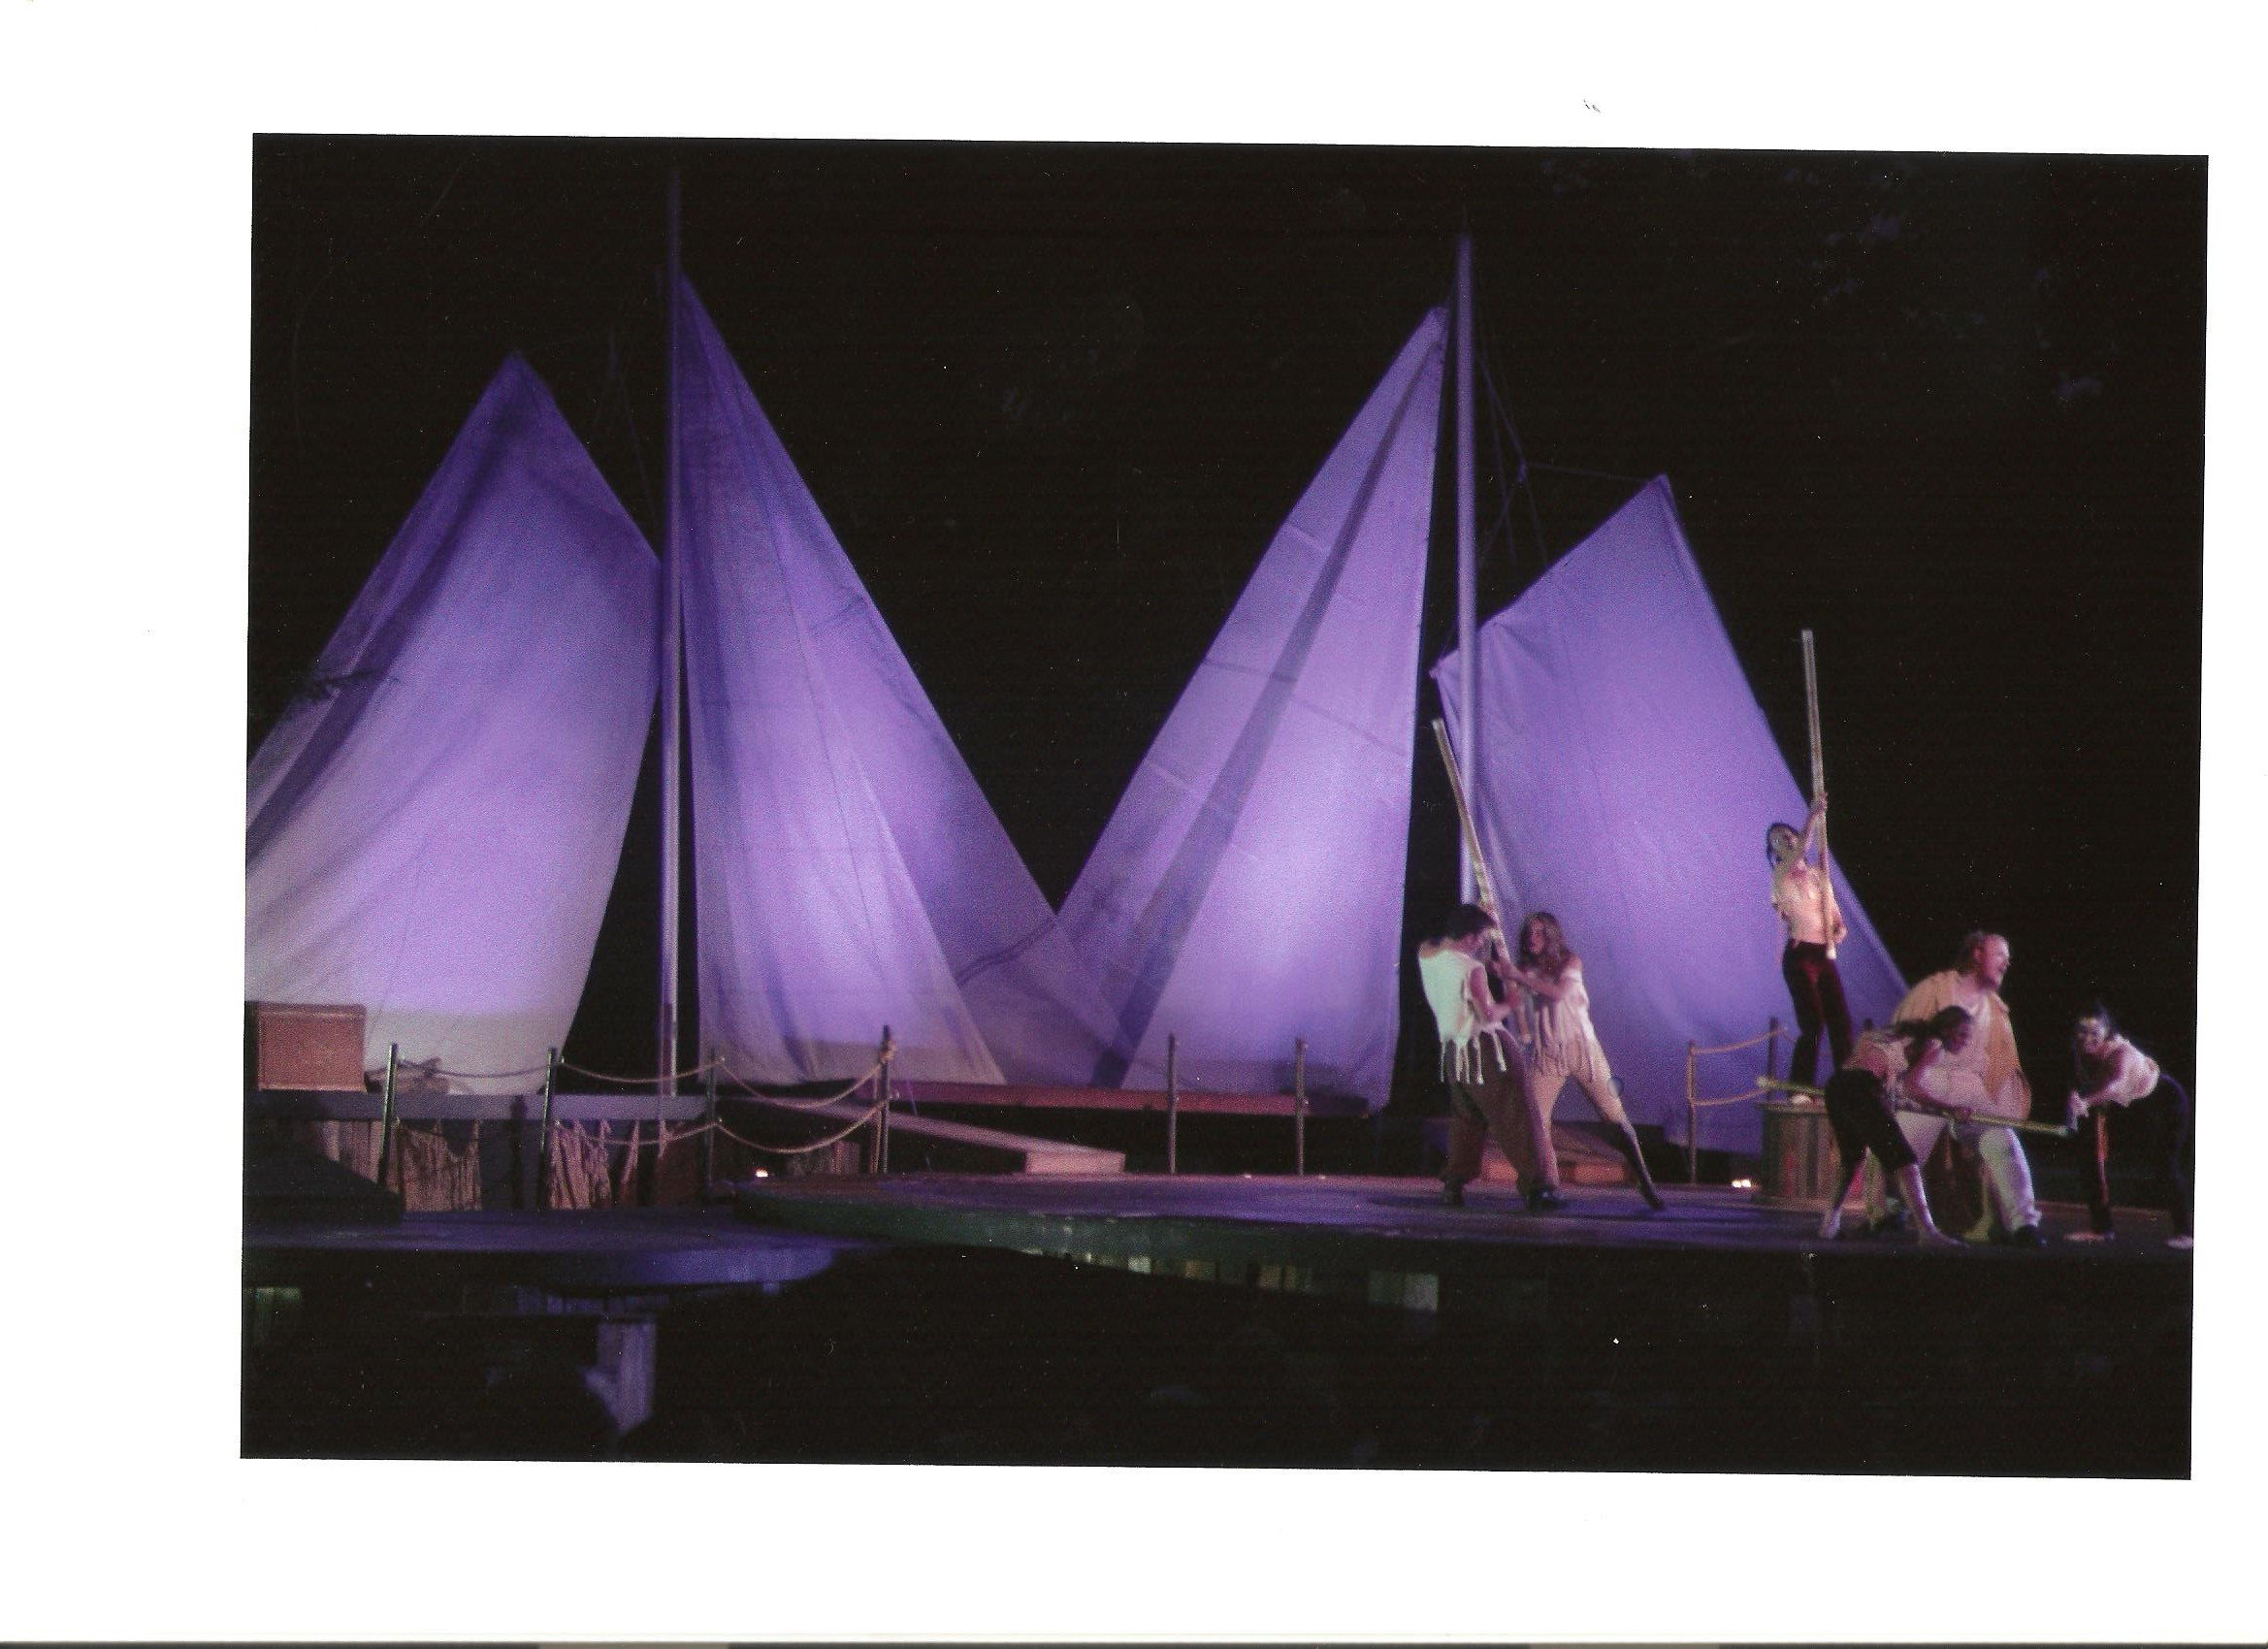 The Tempest, 2003